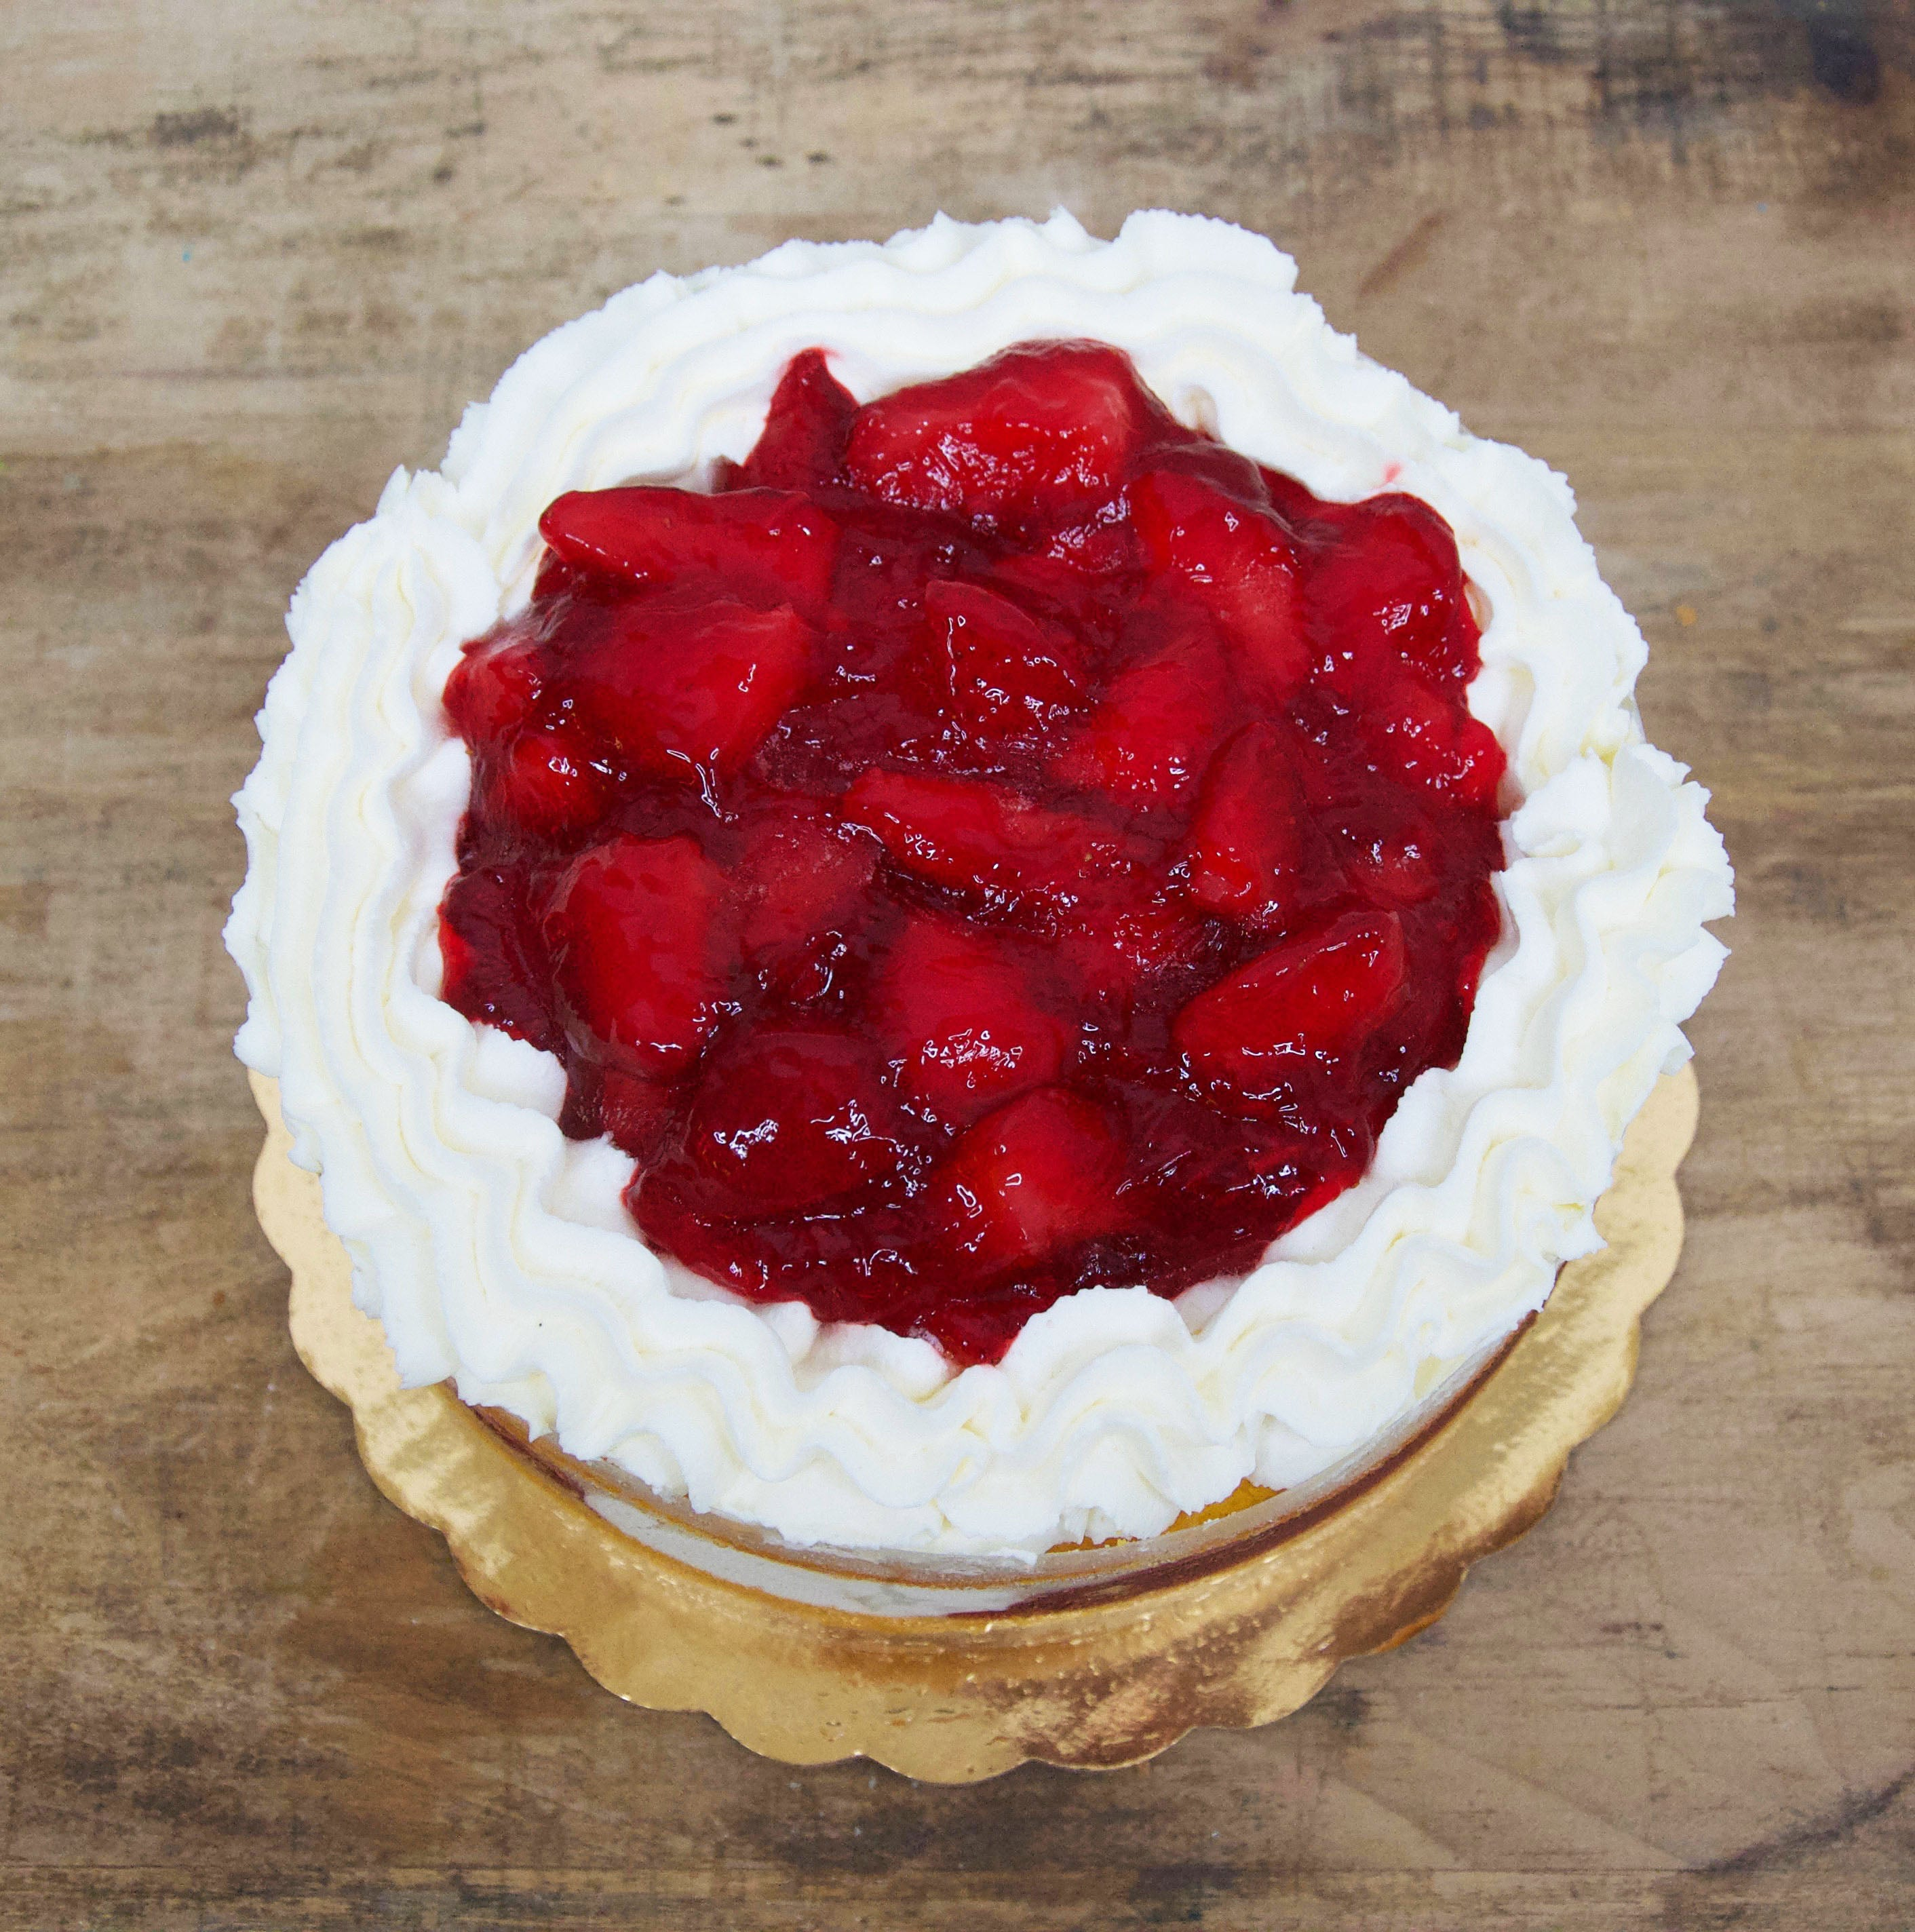 McArthur's Bakery Strawberry Whipped Cream Cake